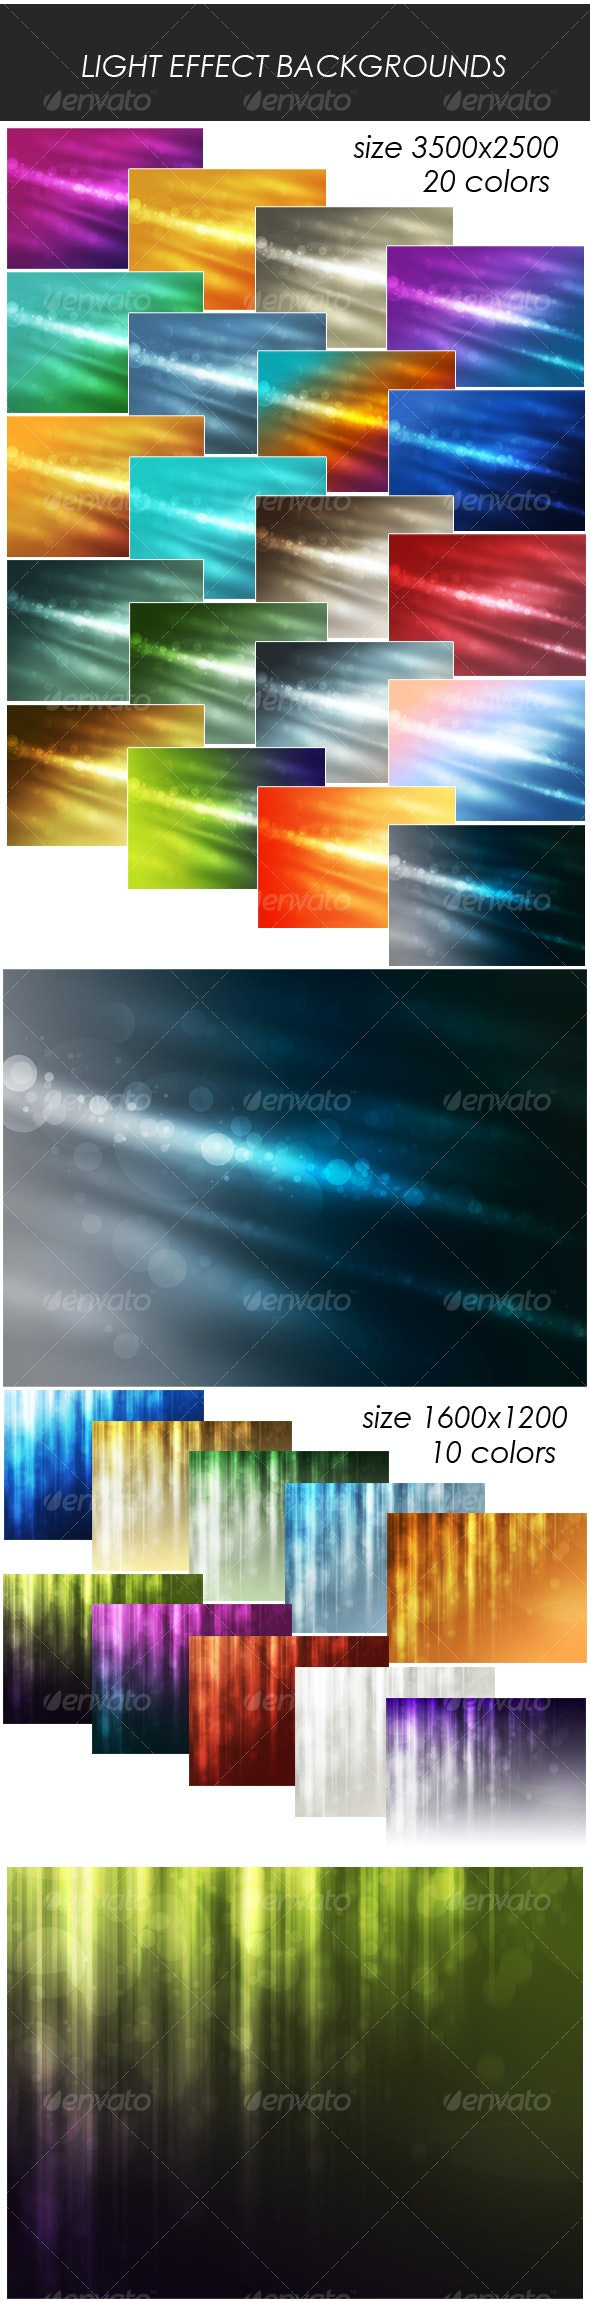 Light Effect Backgrounds - Backgrounds Graphics